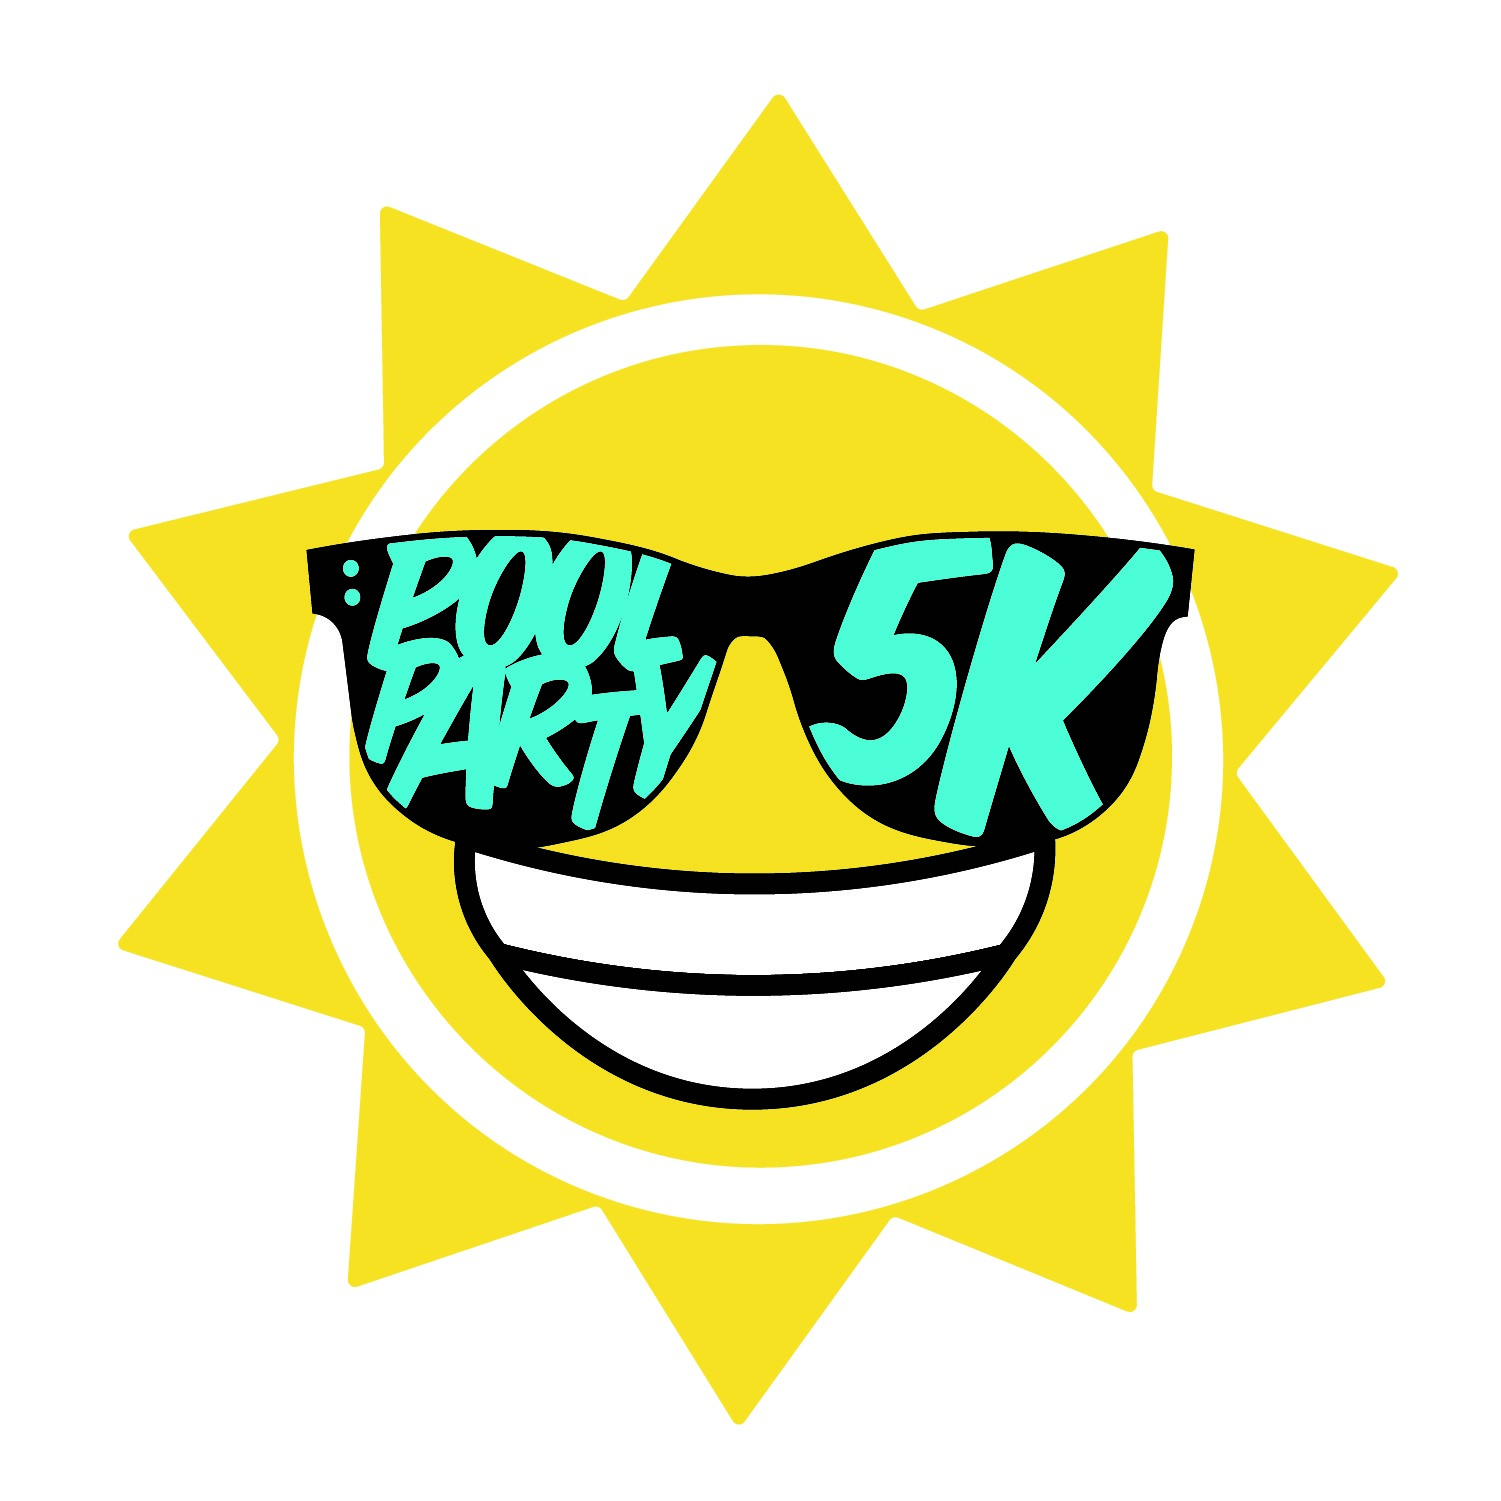 pool party 5 k and fun run